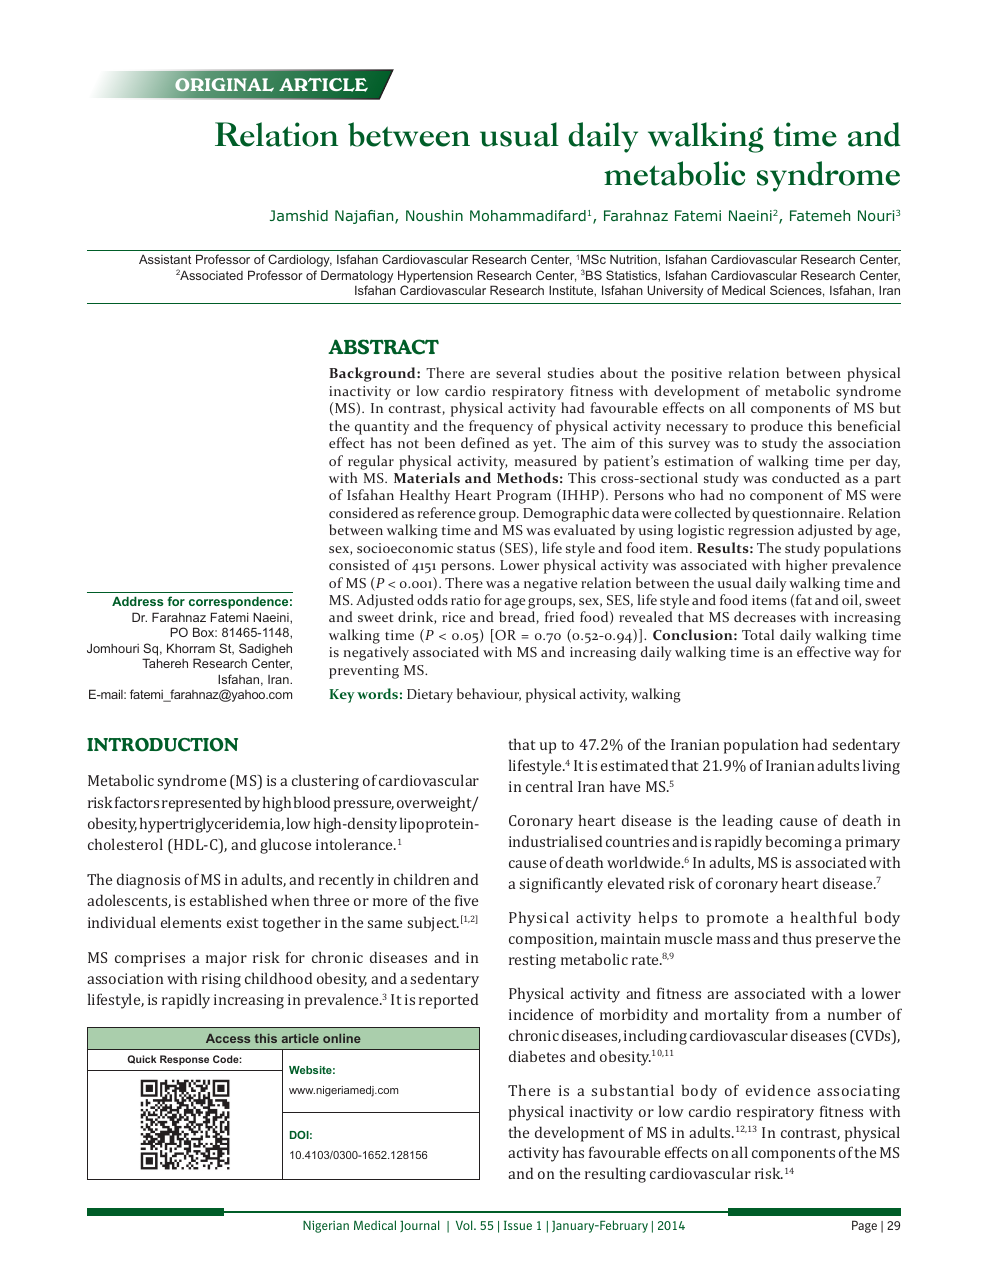 Relation between usual daily walking time and metabolic syndrome